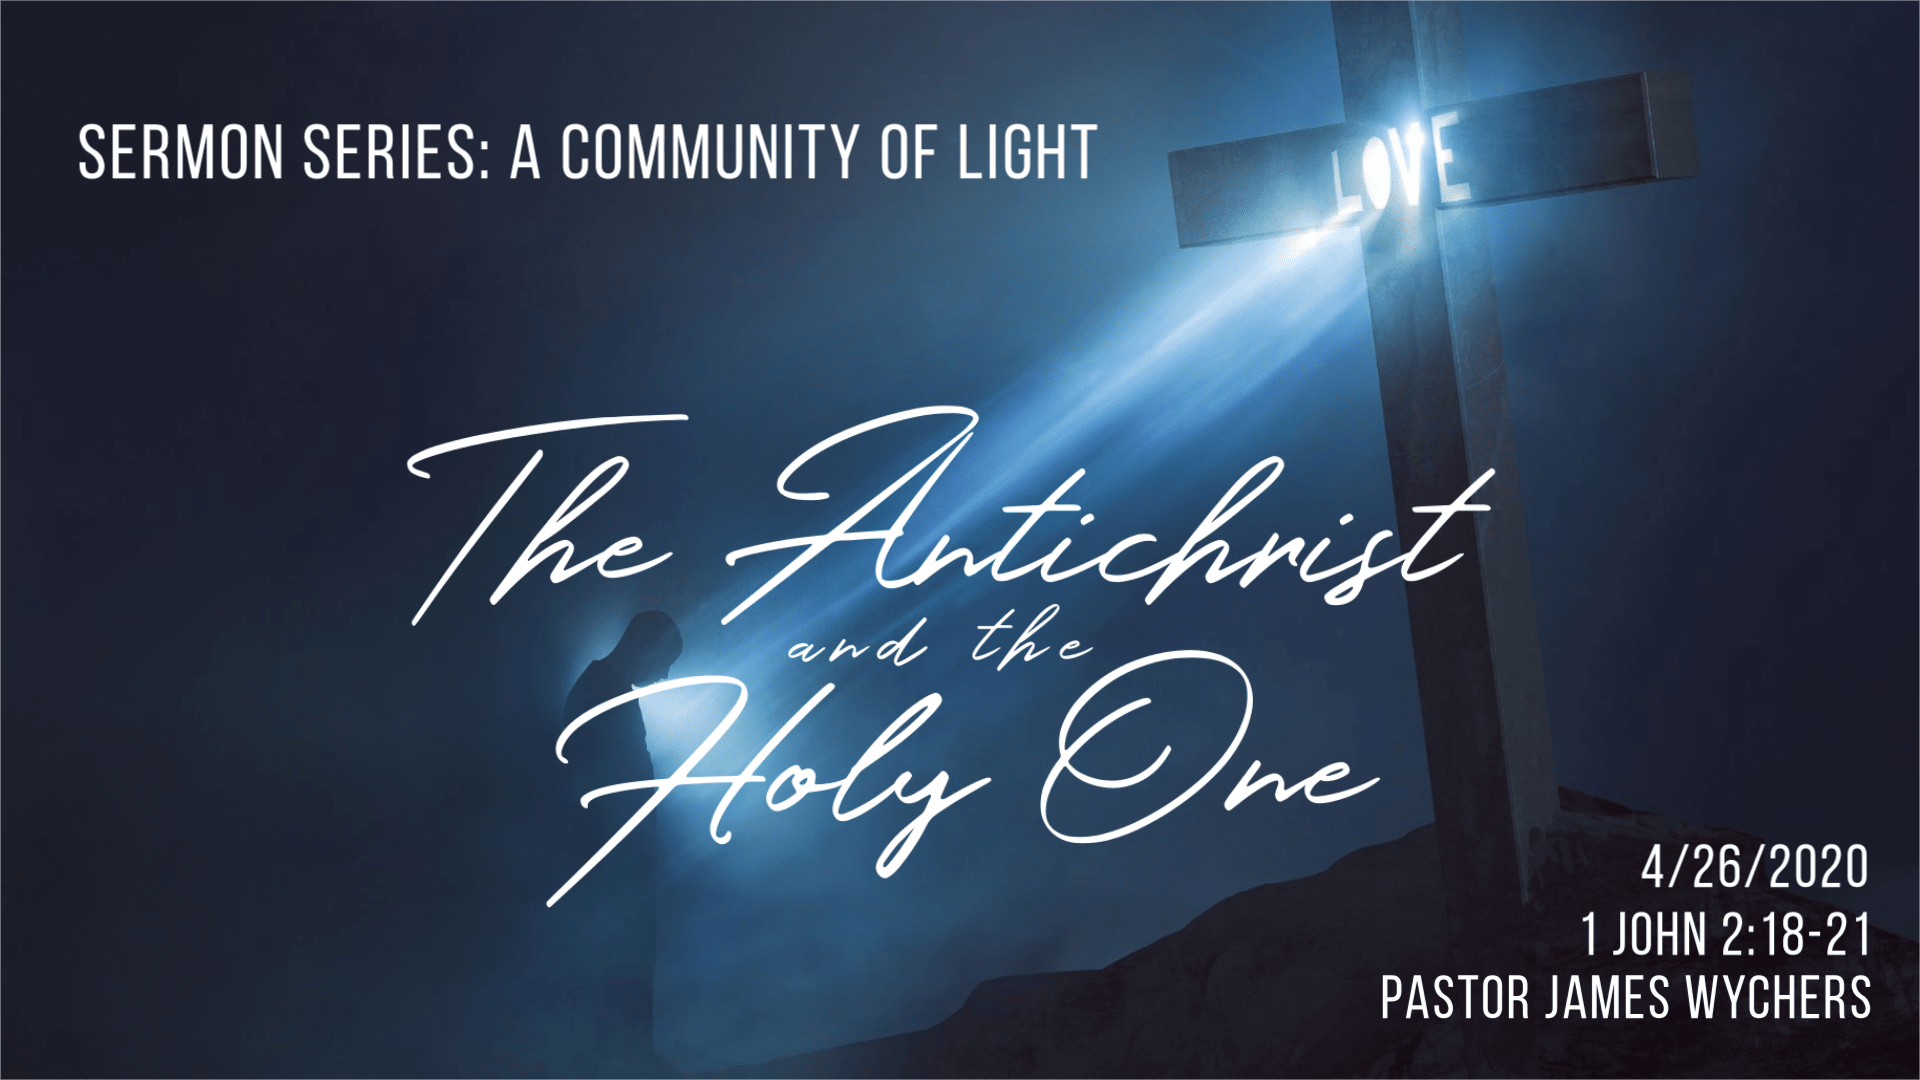 The_Antichrist_and_the_Holy_One (3)-min